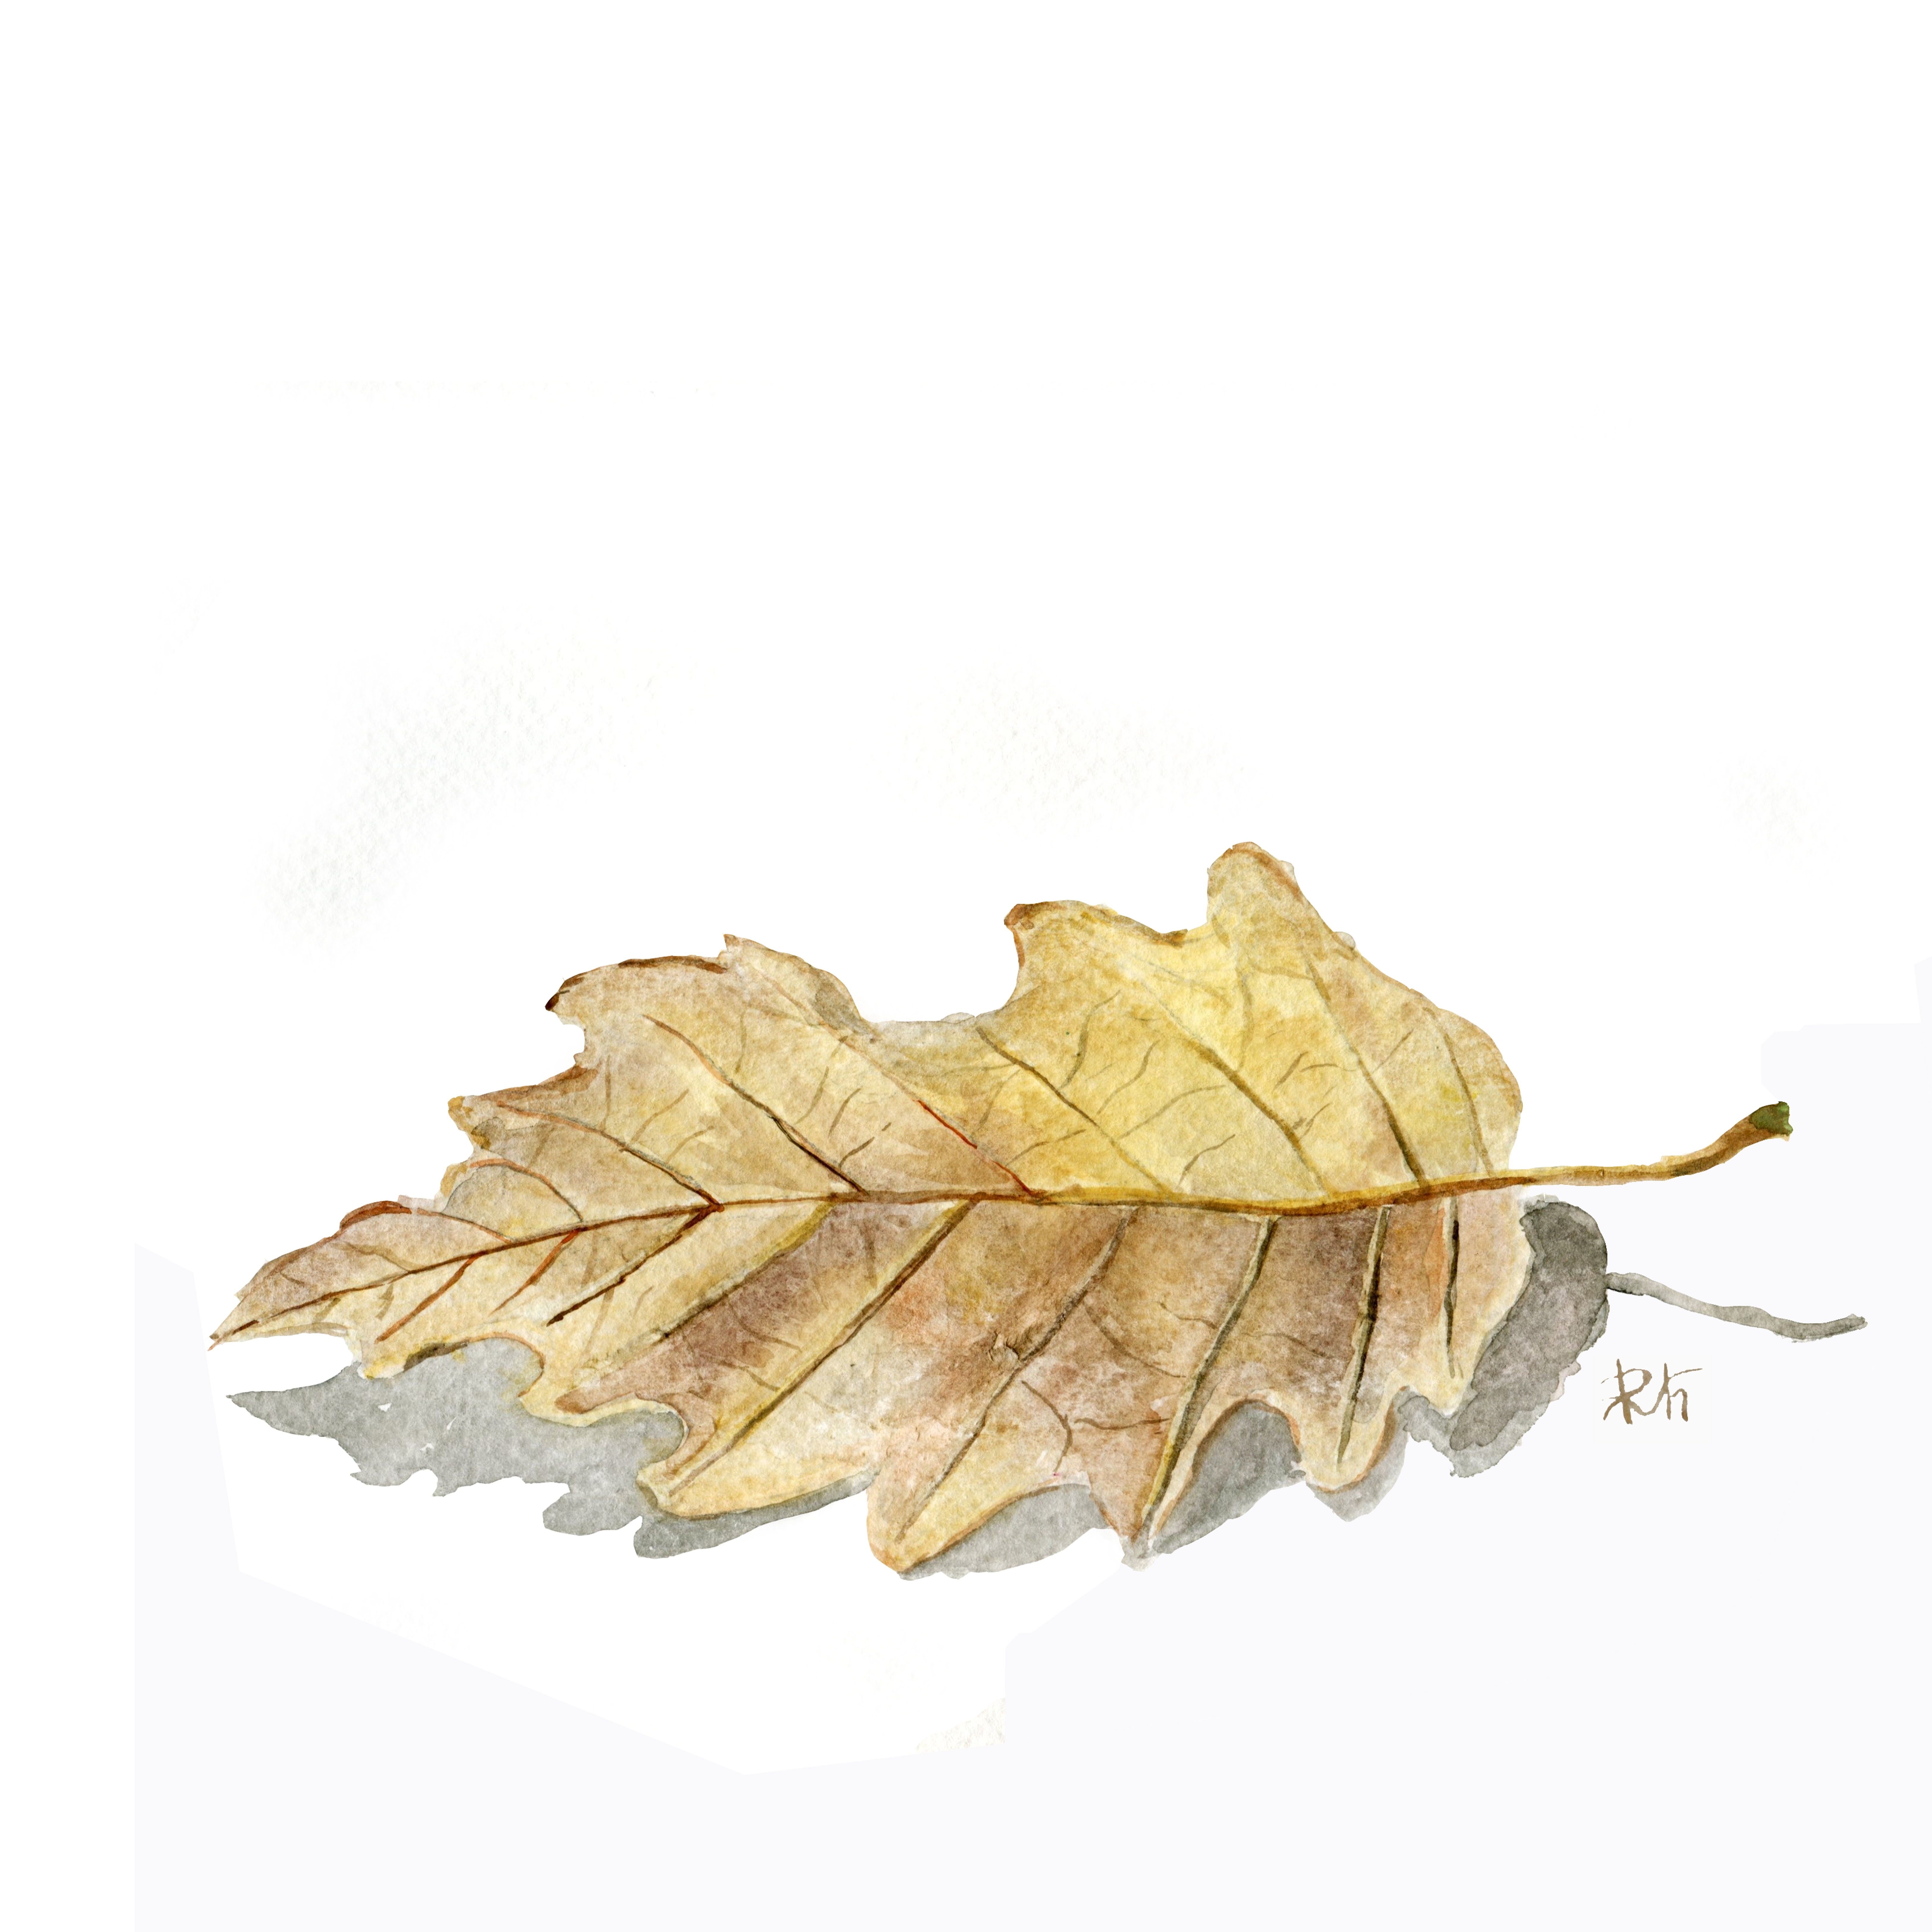 6500x6500 Free Images Tree, Nature, Forest, Branch, Produce, Maple Leaf